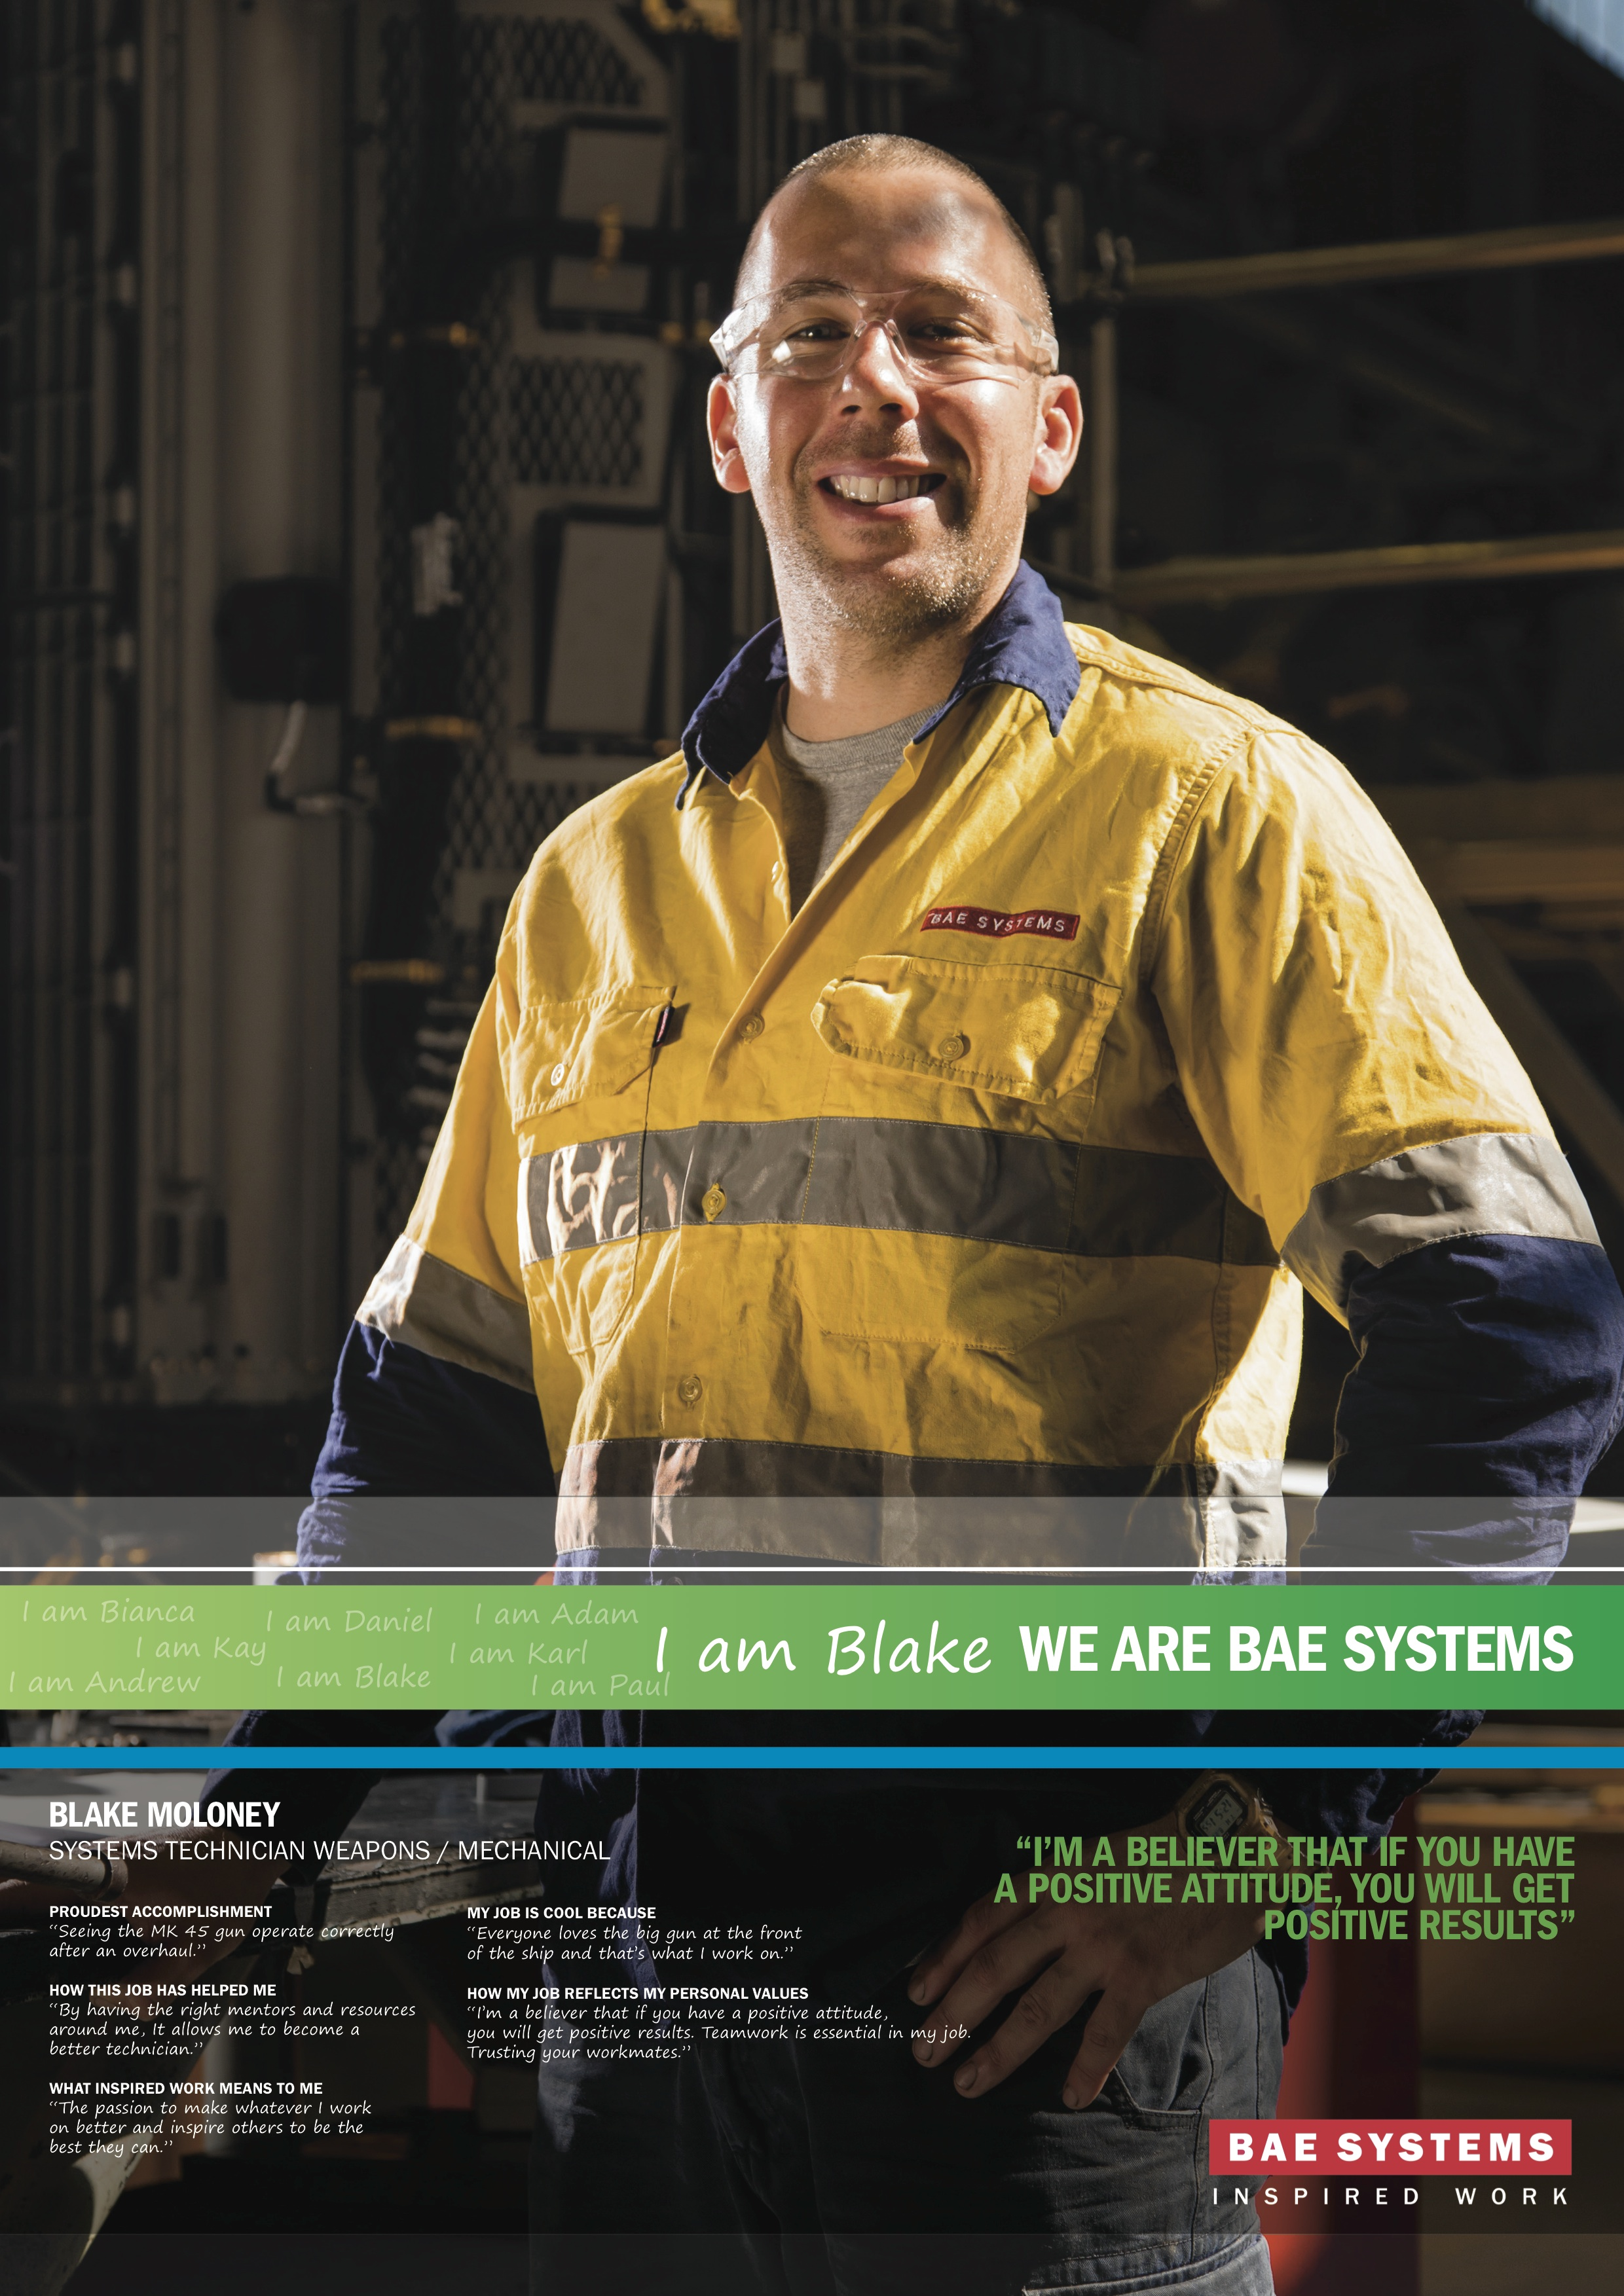 Blake_I am BAE Systems posters_Williamstown_maritime_180914.jpg